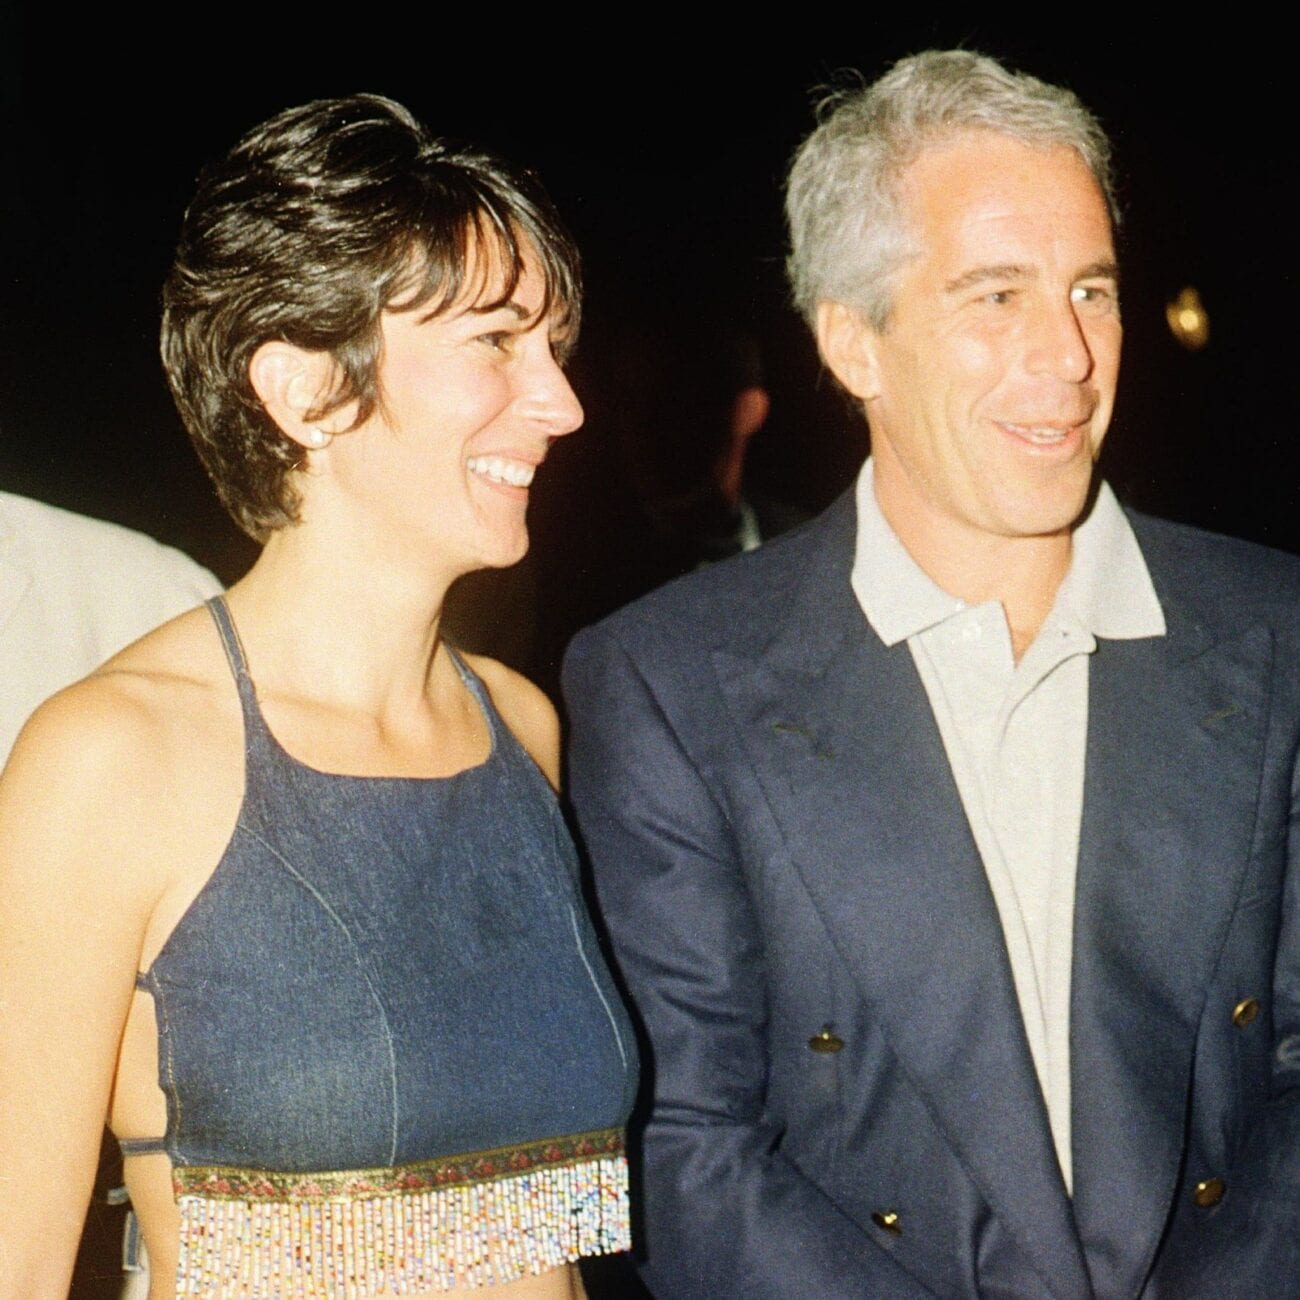 Over the years, Jeffrey Epstein has been linked romantically to numerous women. But did he put a ring on any of them and make them his wife?